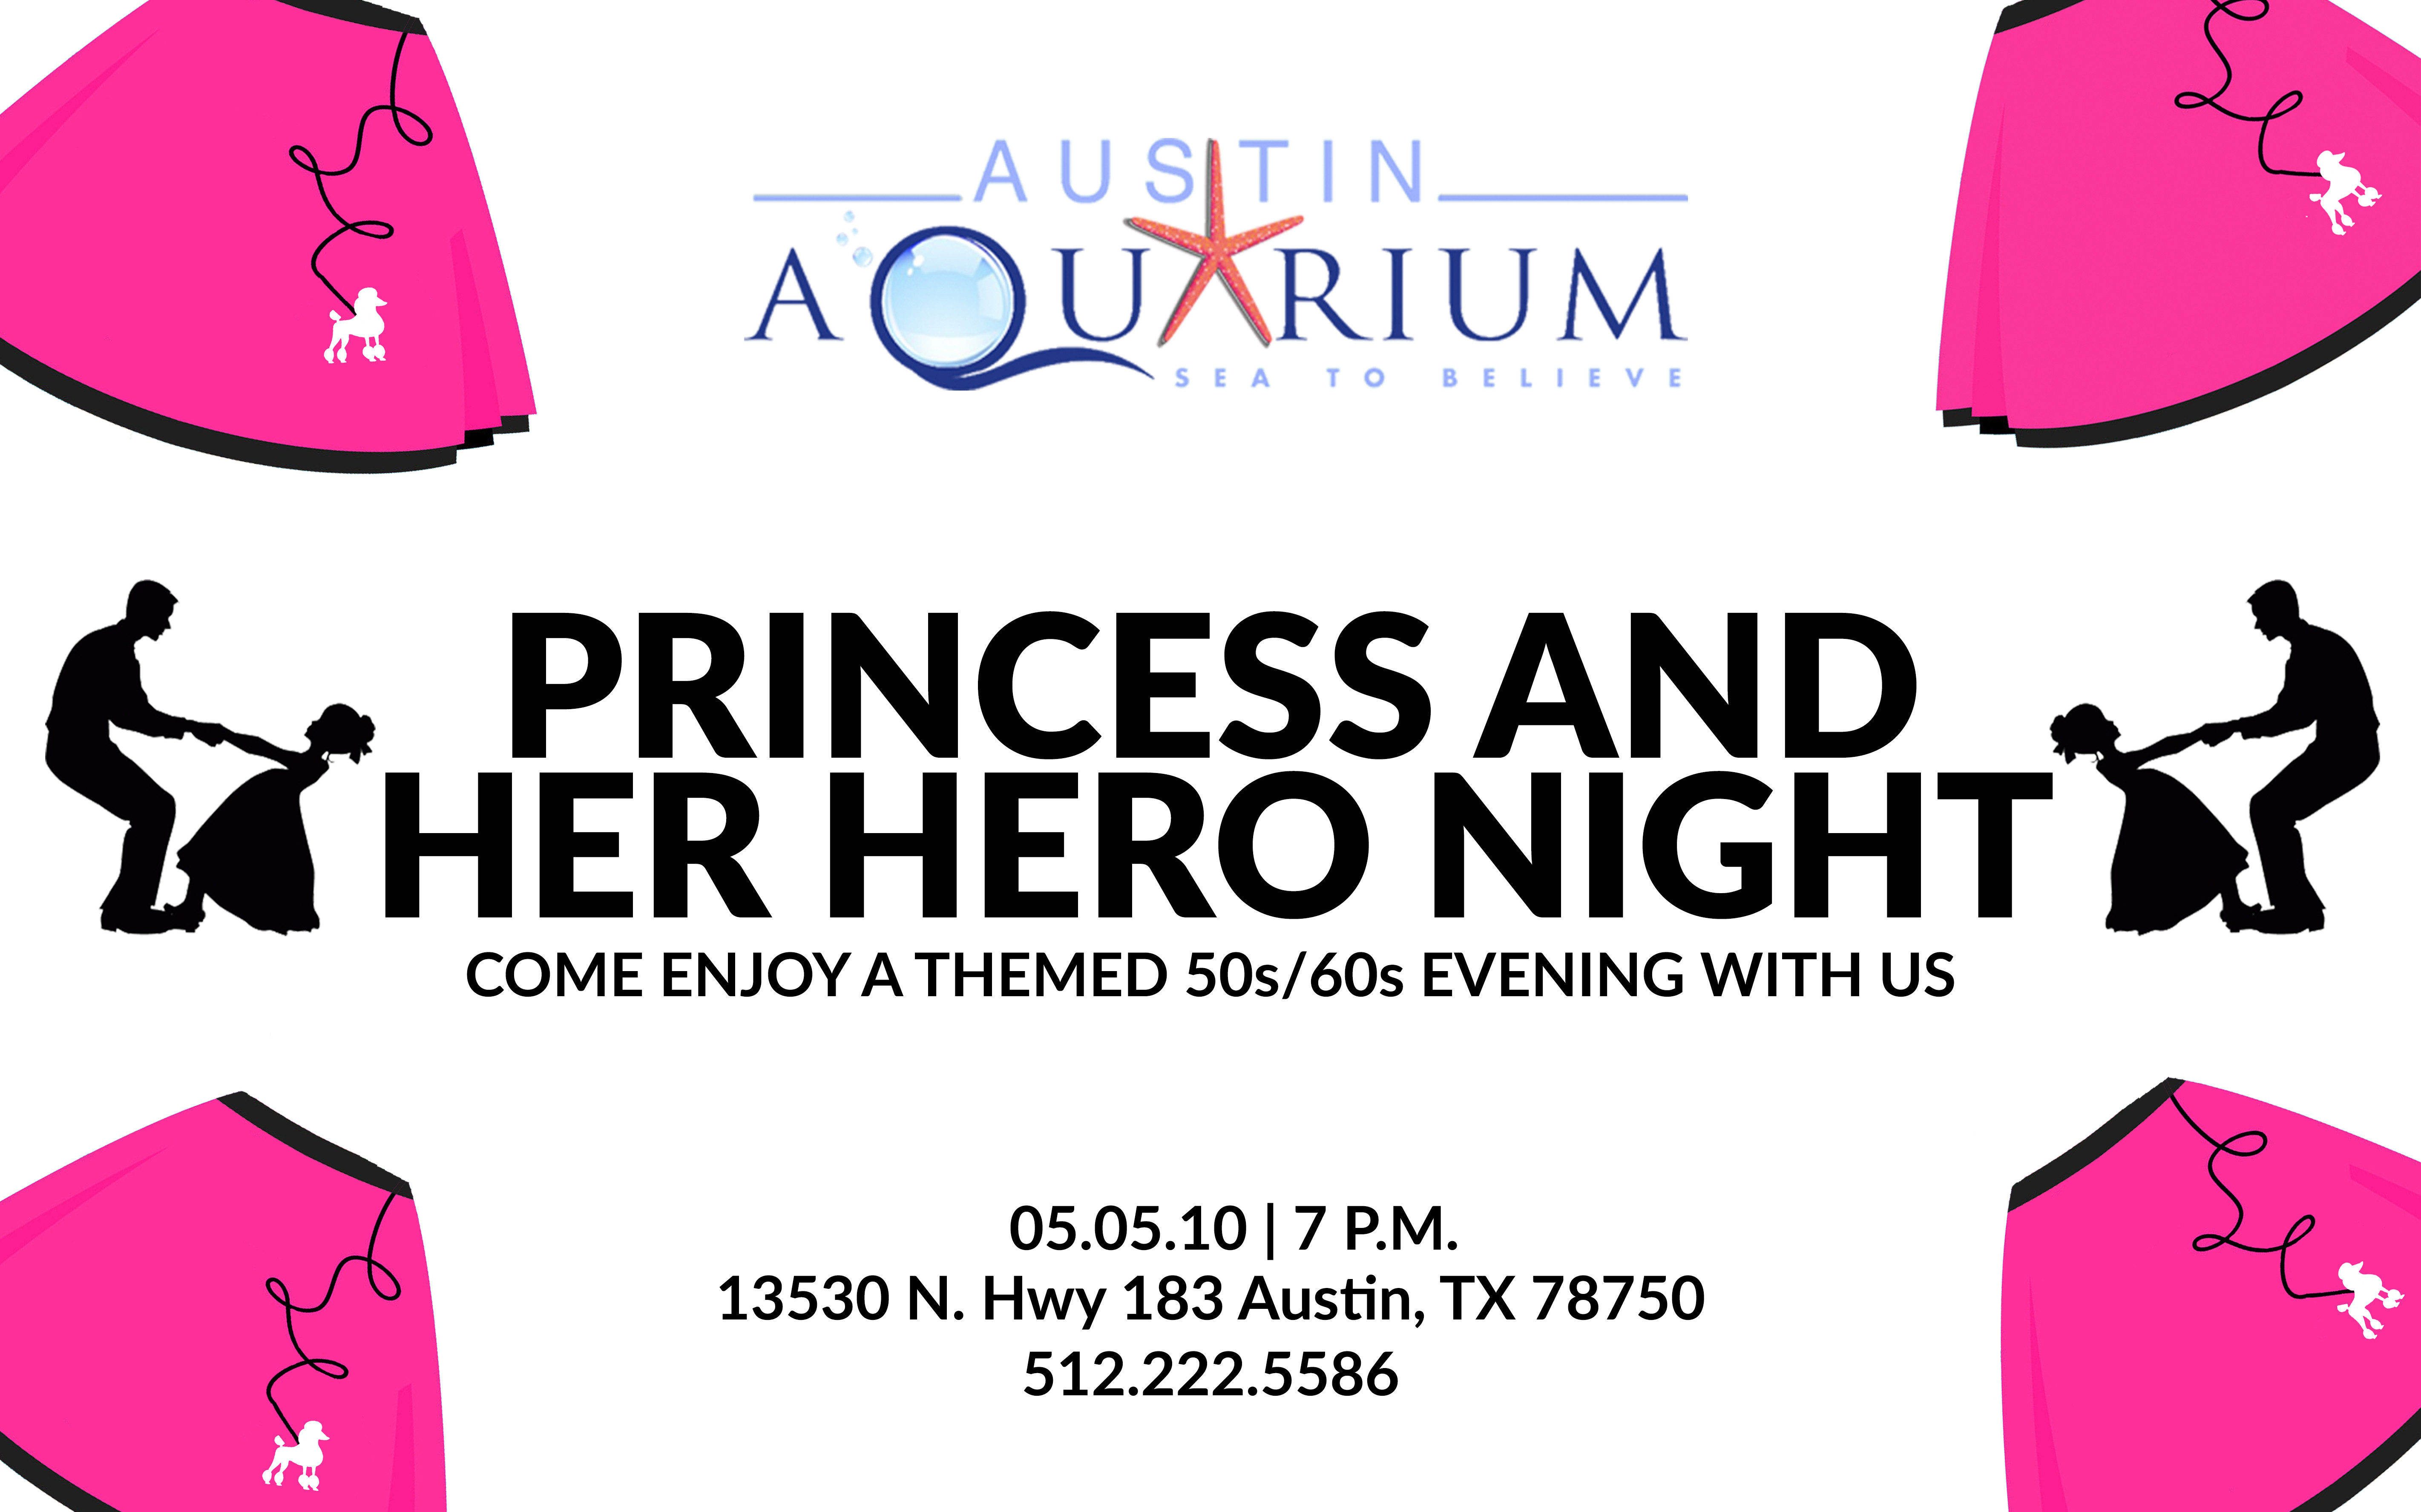 Austin Aquarium princess